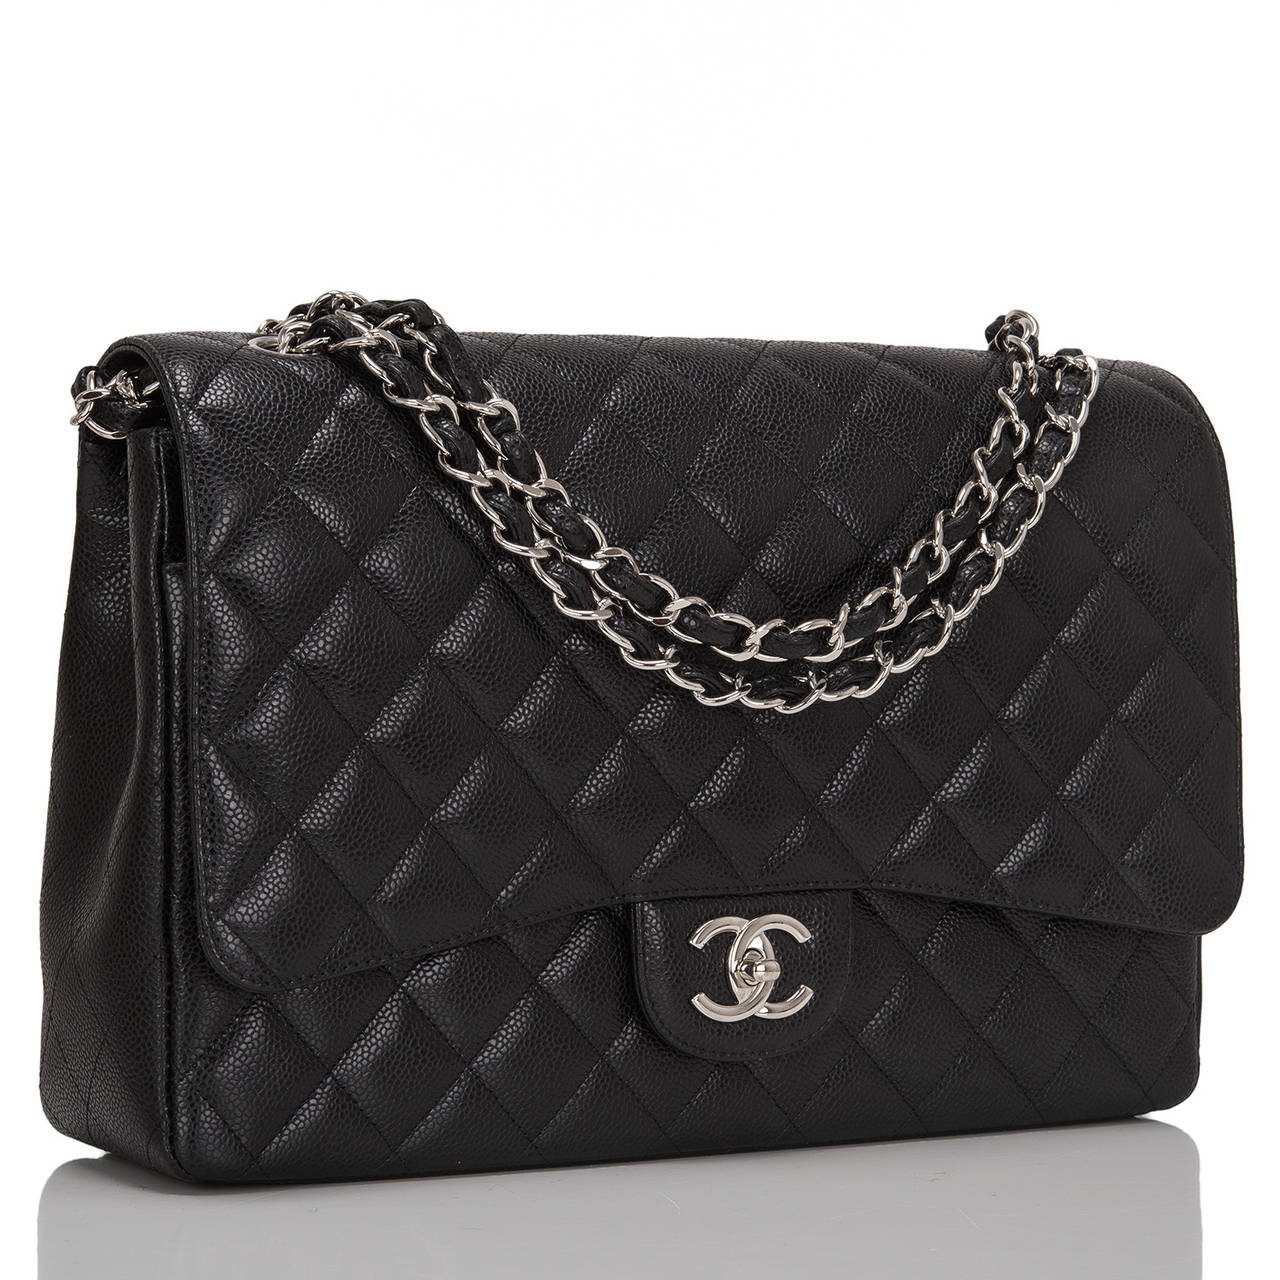 Chanel Maxi Classic double flap of black quilted caviar leather with silver tone hardware features a front flap with signature CC turnlock closure, a half moon back pocket, and an adjustable interwoven silver tone chain link and black leather